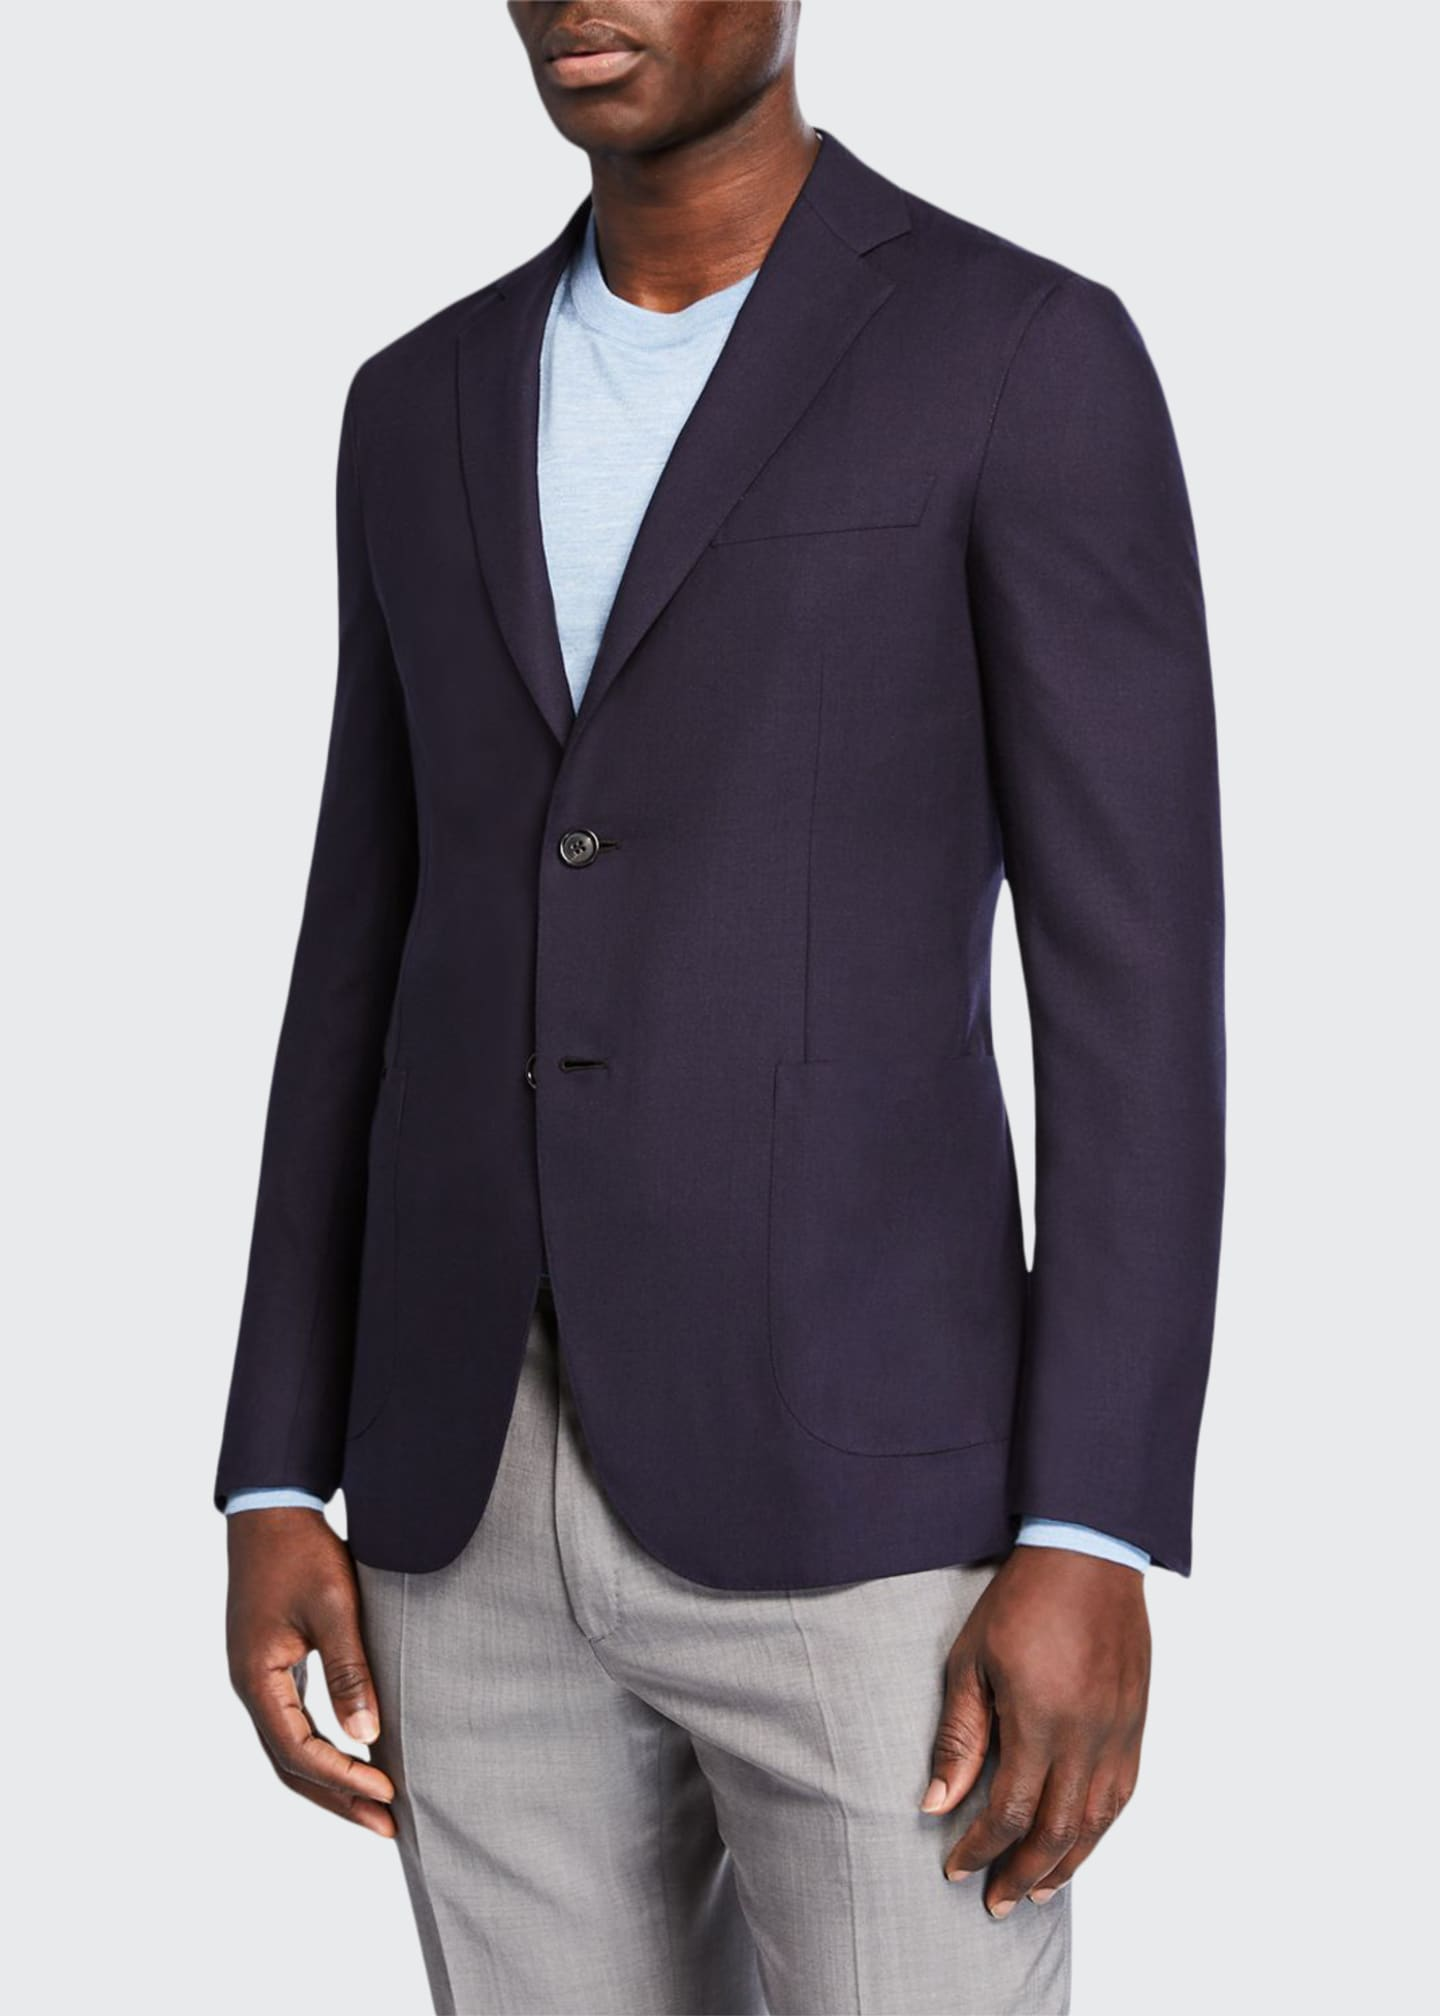 Brioni Men's Cashmere Two-Button Jacket